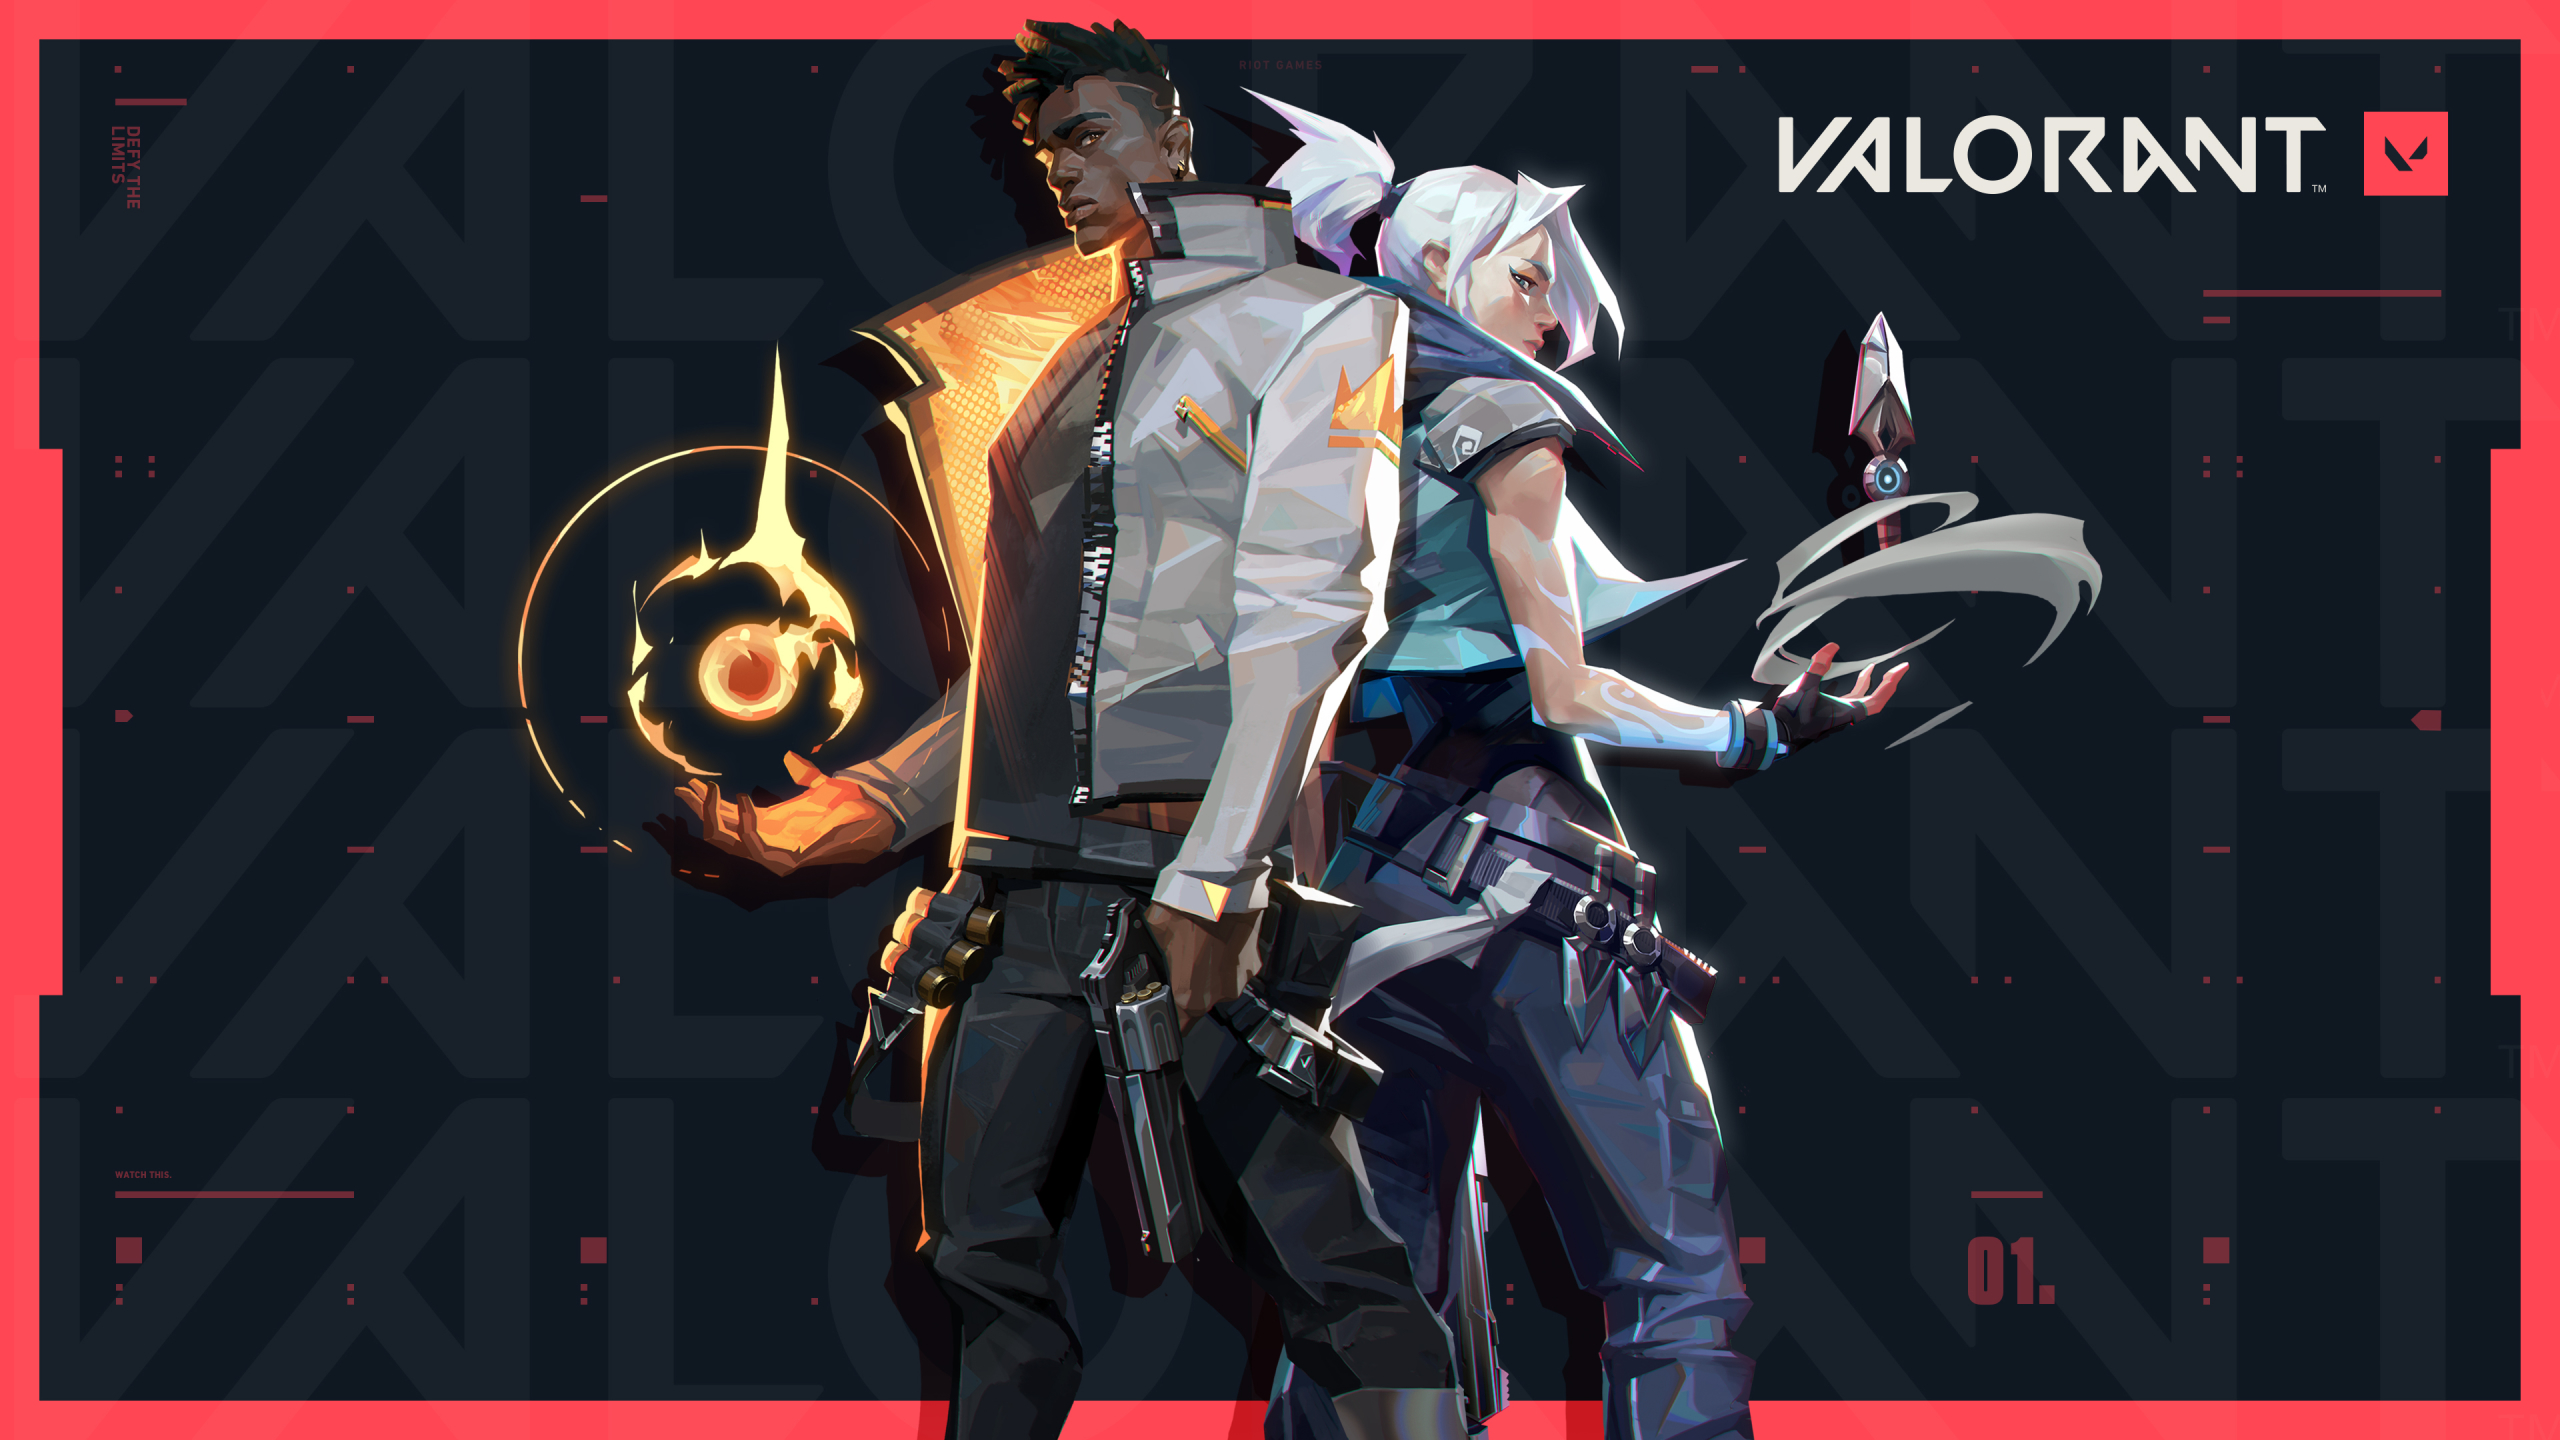 2560x1440 Valorant Game 4k 1440p Resolution Wallpaper Hd Games 4k Wallpapers Images Photos And Background